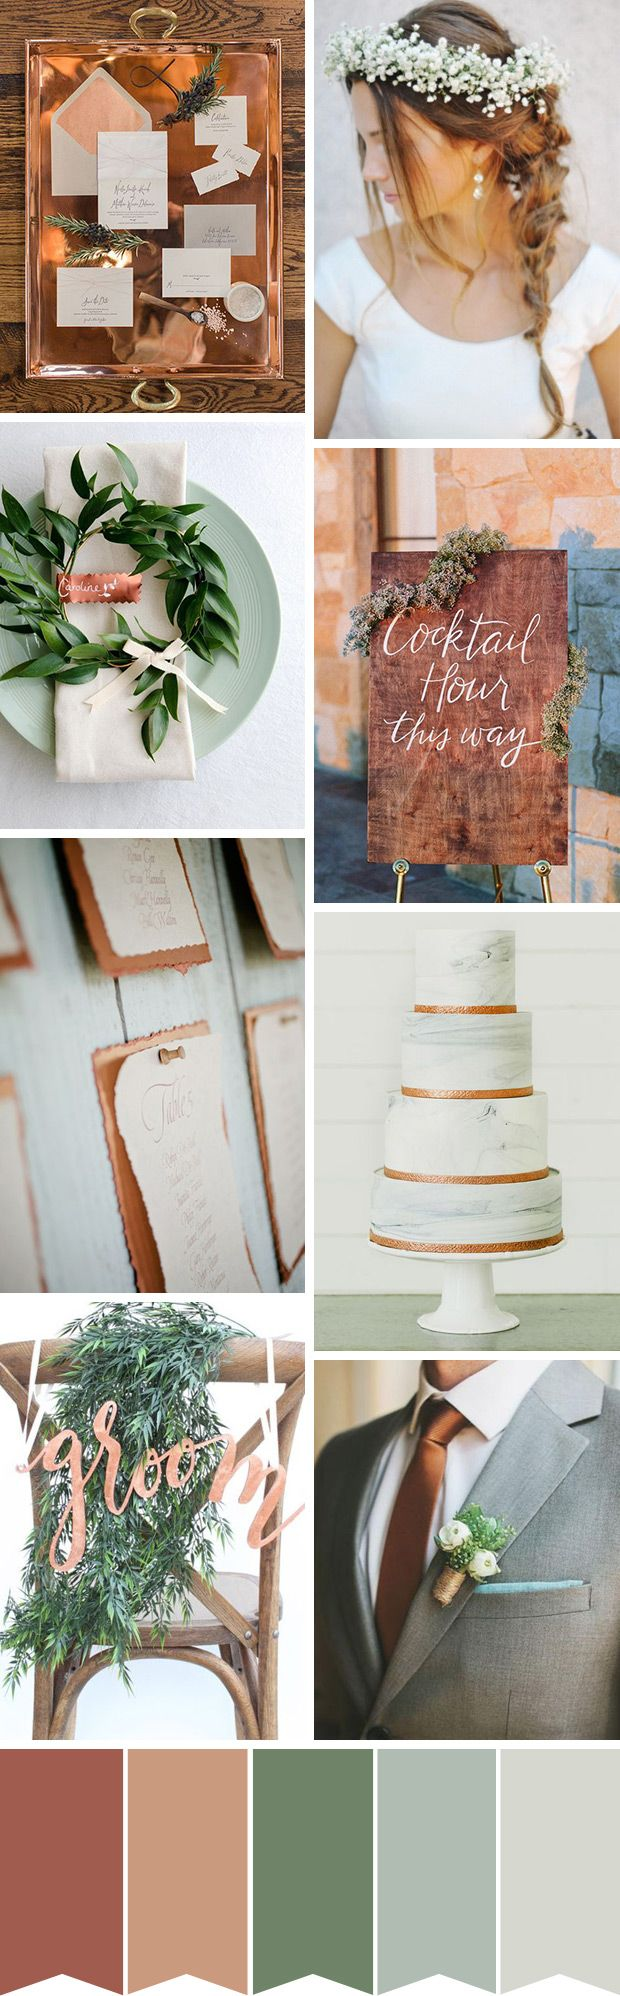 A chic organic copper and green wedding color palette | www.onefabday.com